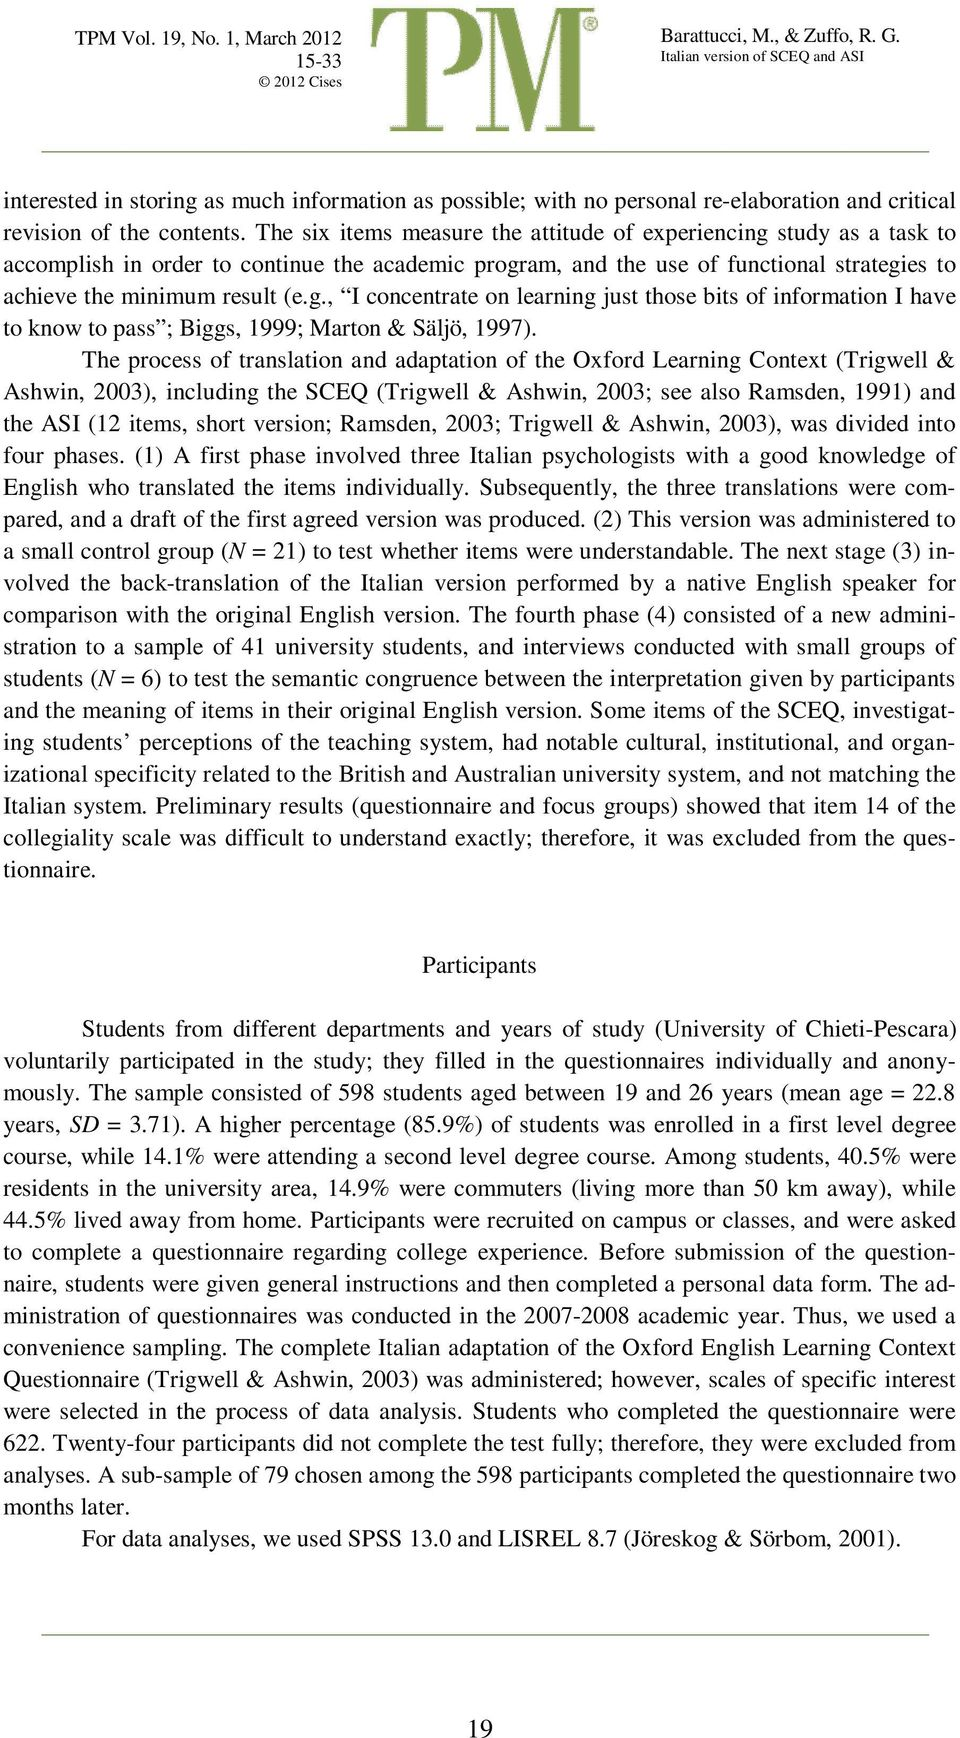 The process of translation and adaptation of the Oxford Learning Context (Trigwell & Ashwin, 2003), including the SCEQ (Trigwell & Ashwin, 2003; see also Ramsden, 1991) and the ASI (12 items, short